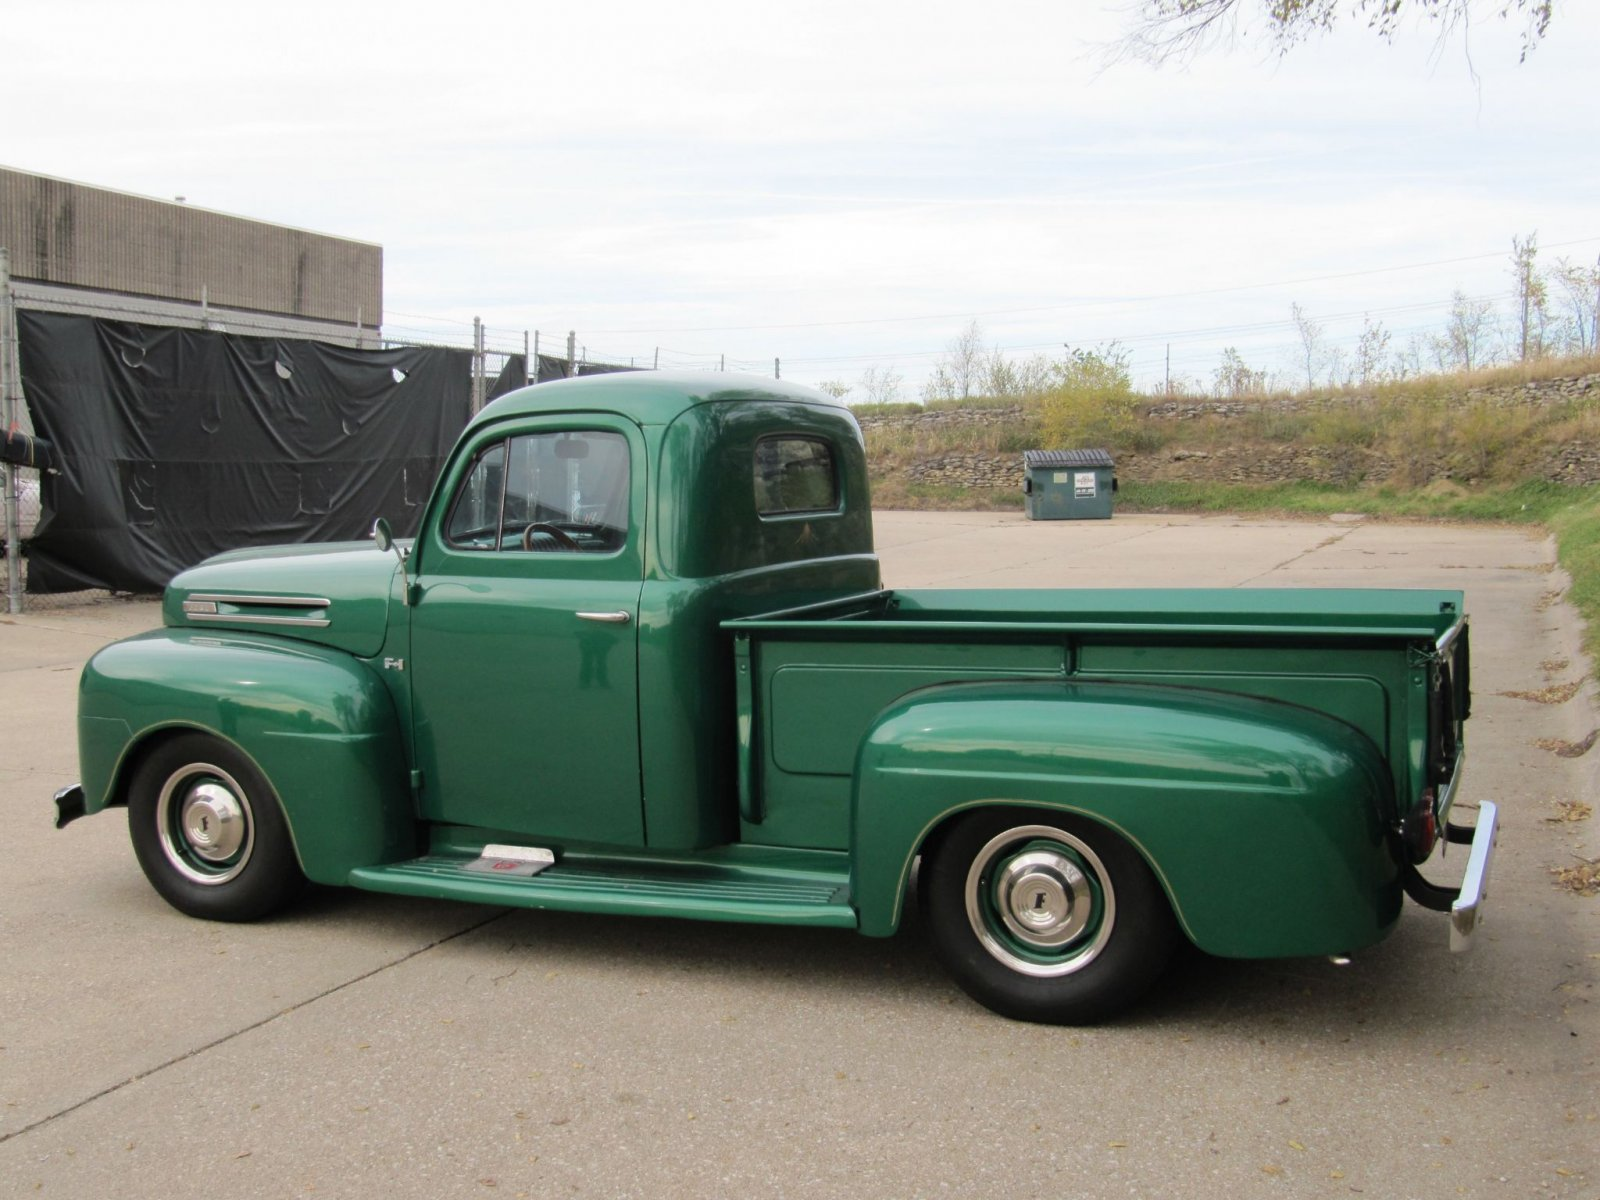 1950 FORD F-1 STEPSIDE LONG-HAULER GLOSS GREEN ENVY 13.jpg